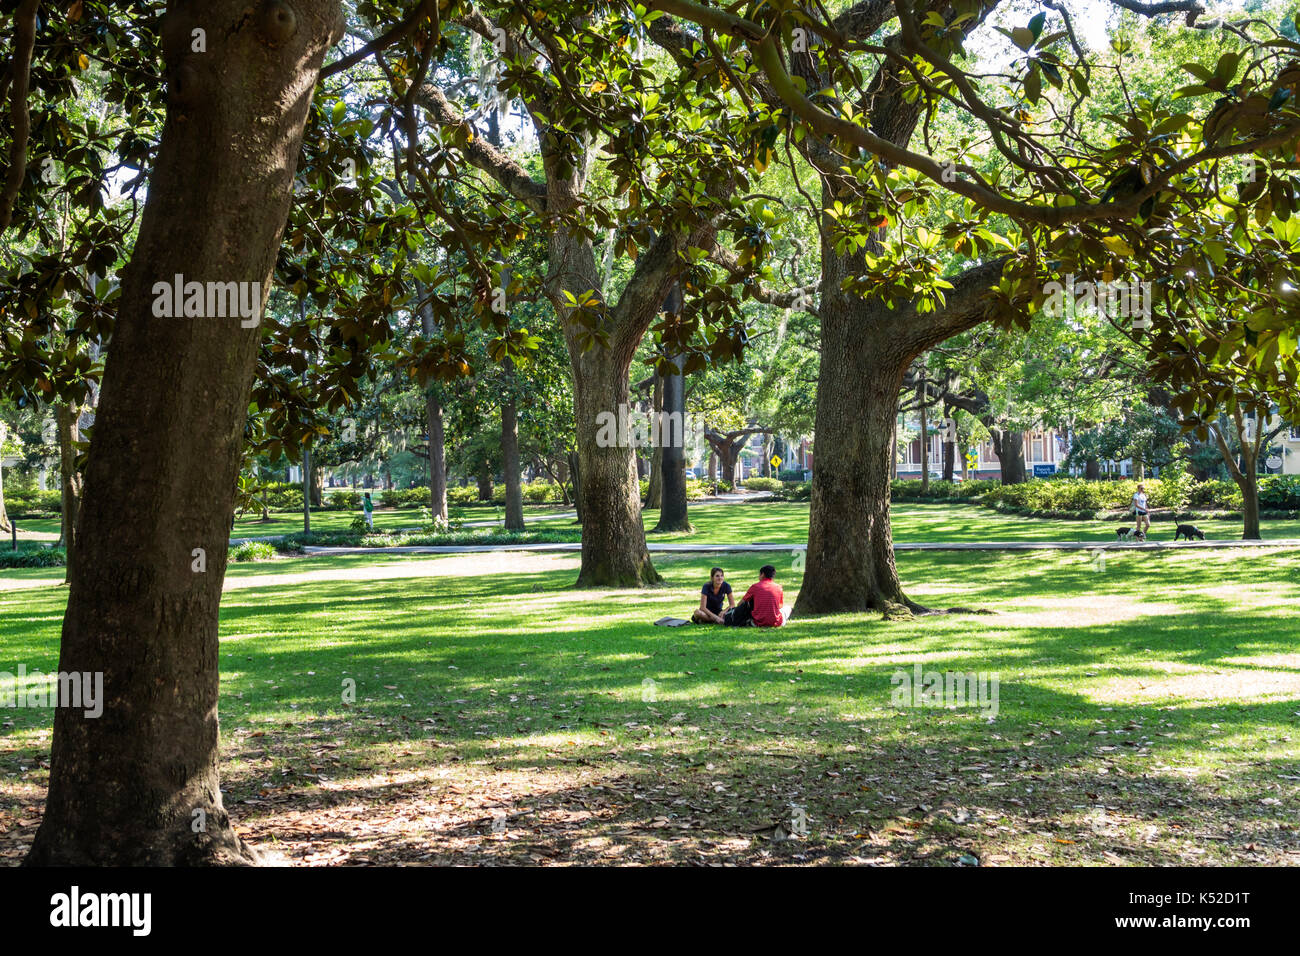 Savannah Georgia historic district Forsyth Park trees lawn - Stock Image